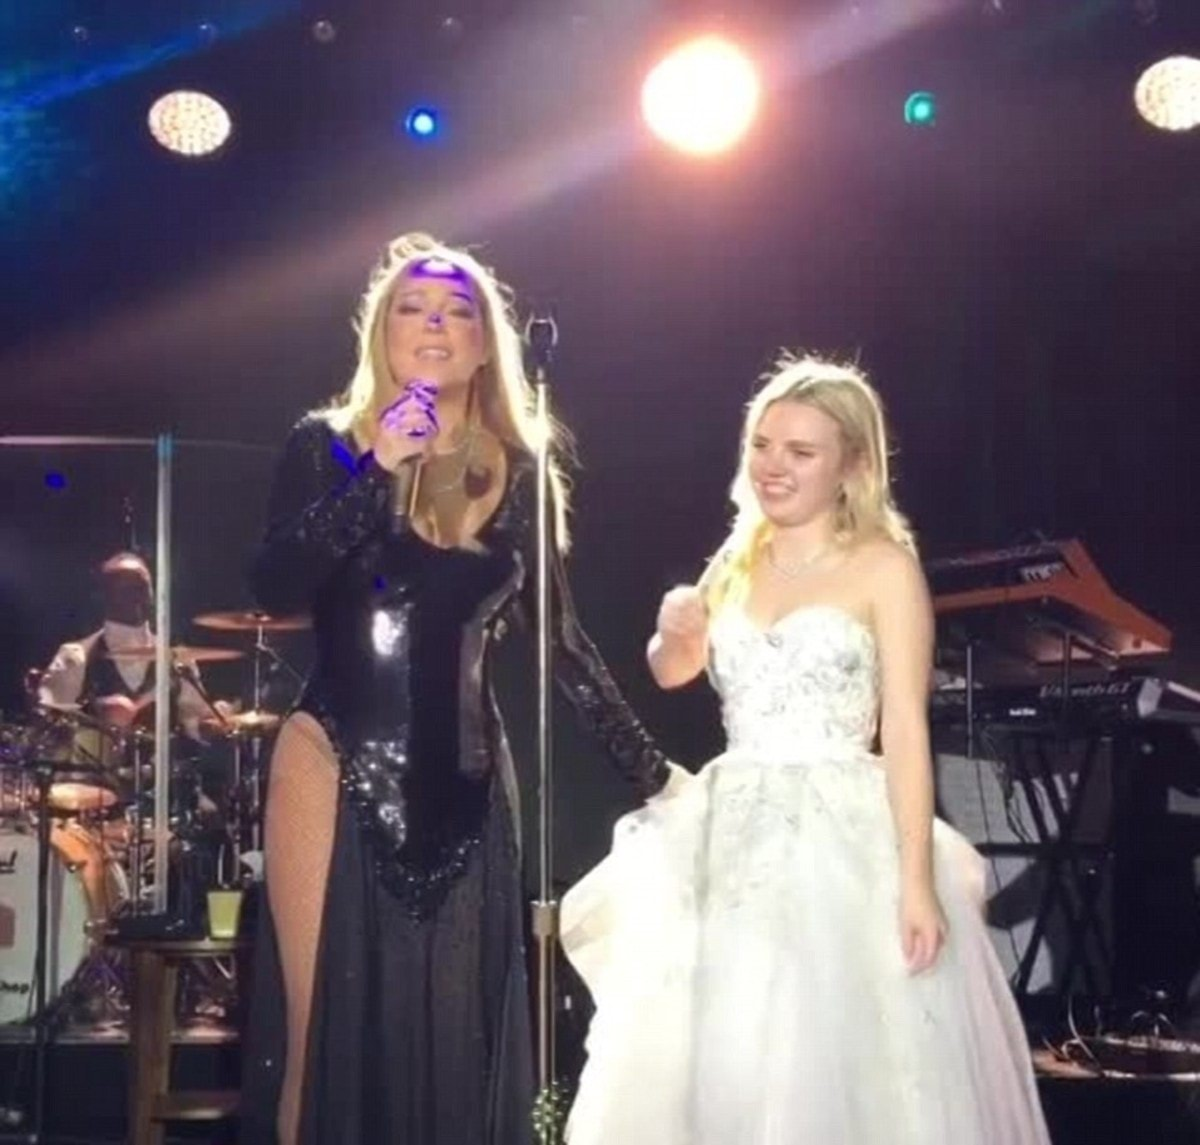 3C2B22FA00000578-4124122-Sir_Elton_John_and_Mariah_Carey_pictured_were_paid_millions_to_s-a-35_1484563637533